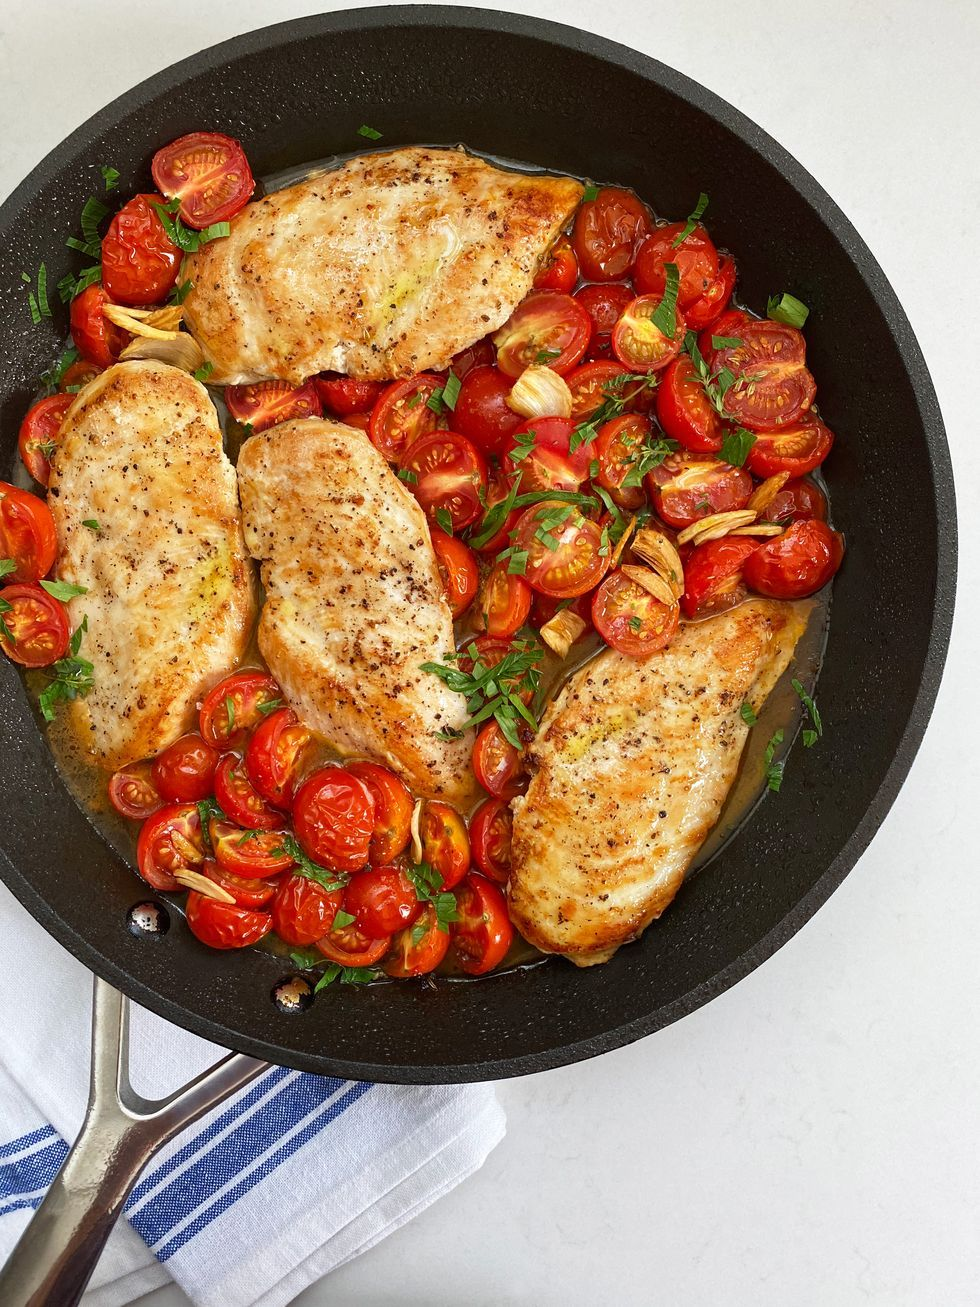 Best Skillet Roasted Chicken And Tomatoes How To Make Skillet Roasted Chicken And Tomatoes